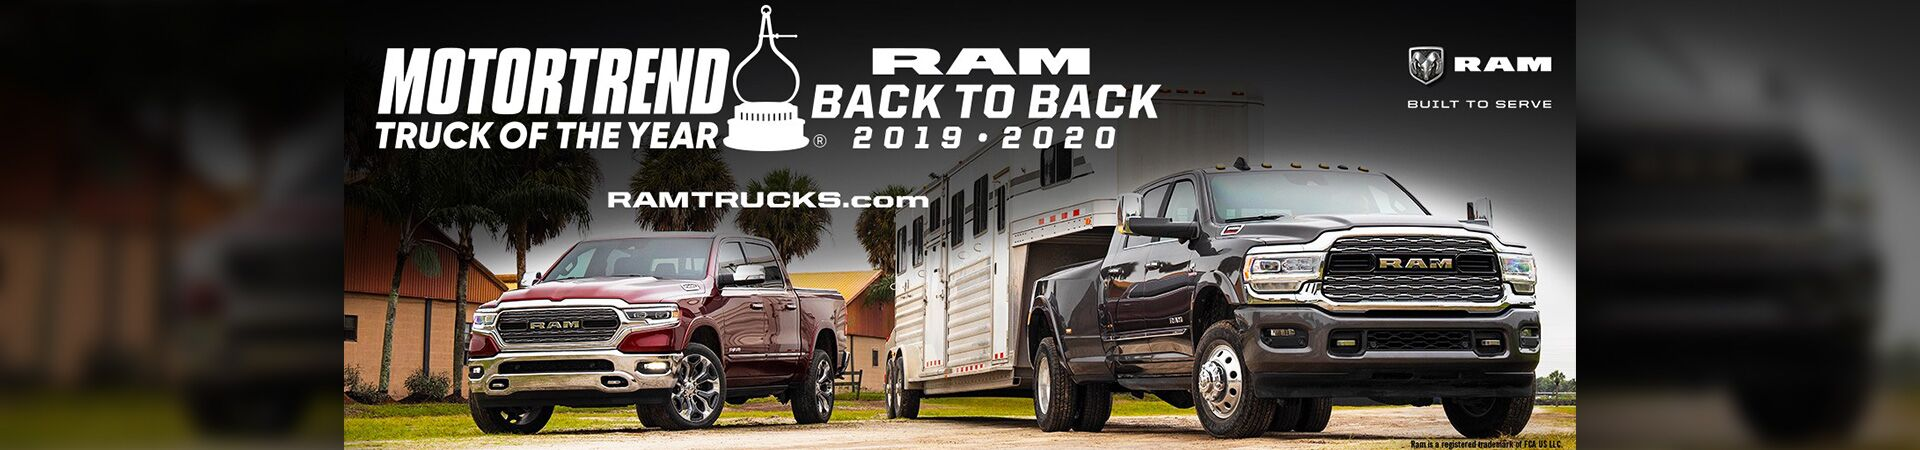 RAM Truck of the year